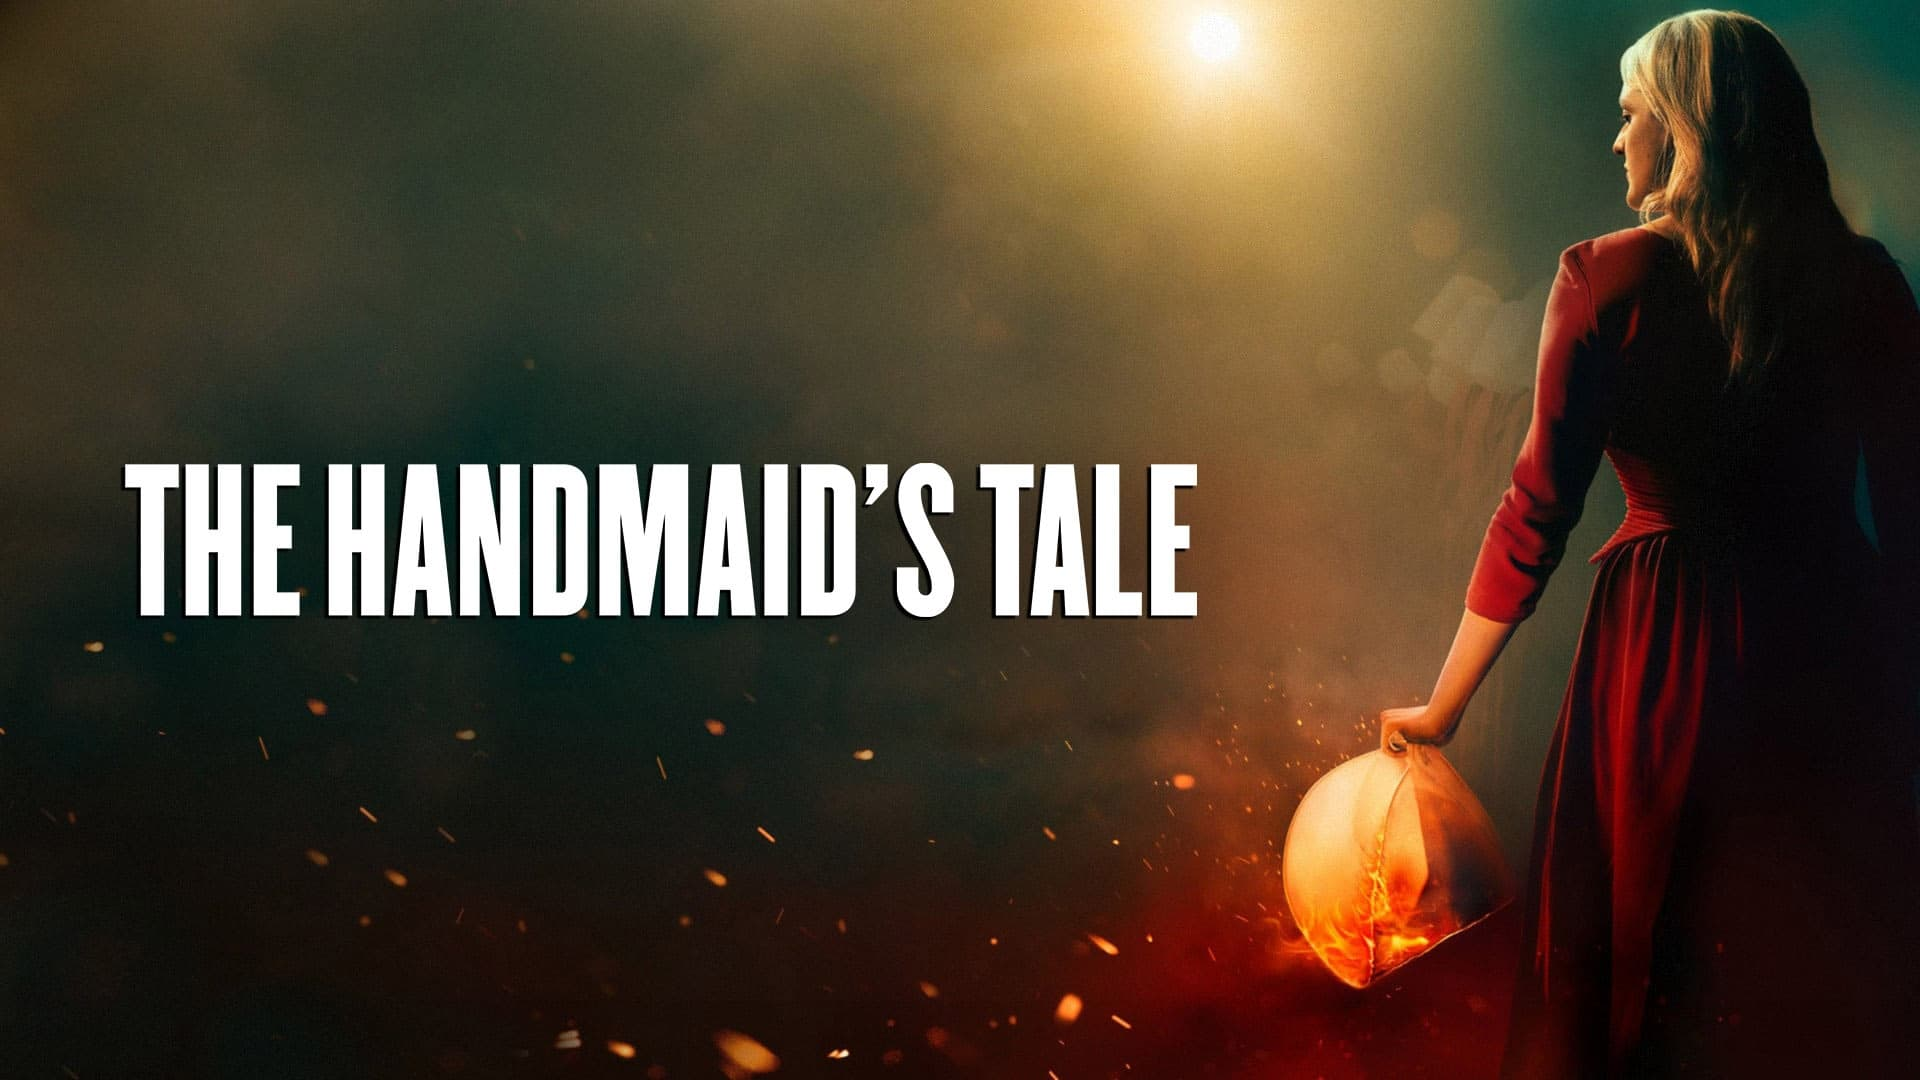 The Handmaid's Tale - Specials